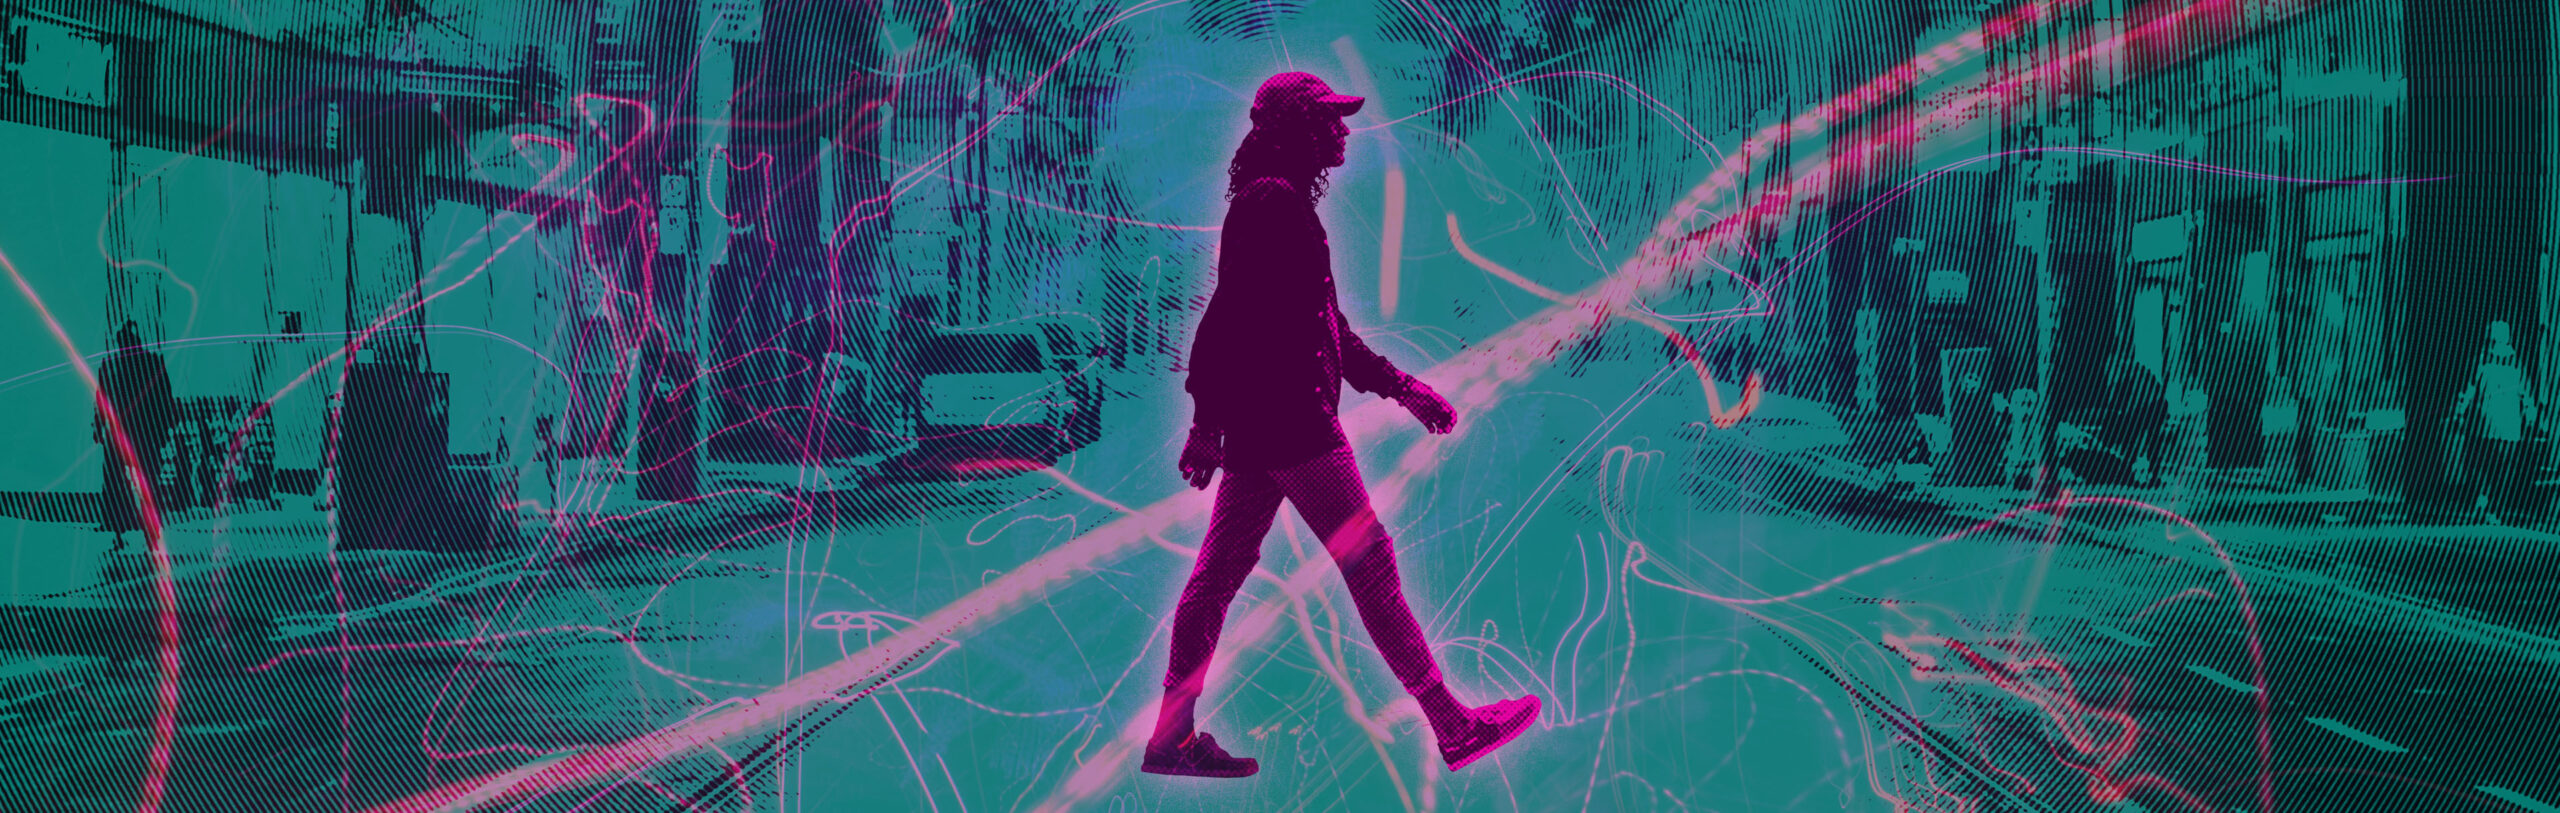 Pink profile of a person crossing street against a teal background